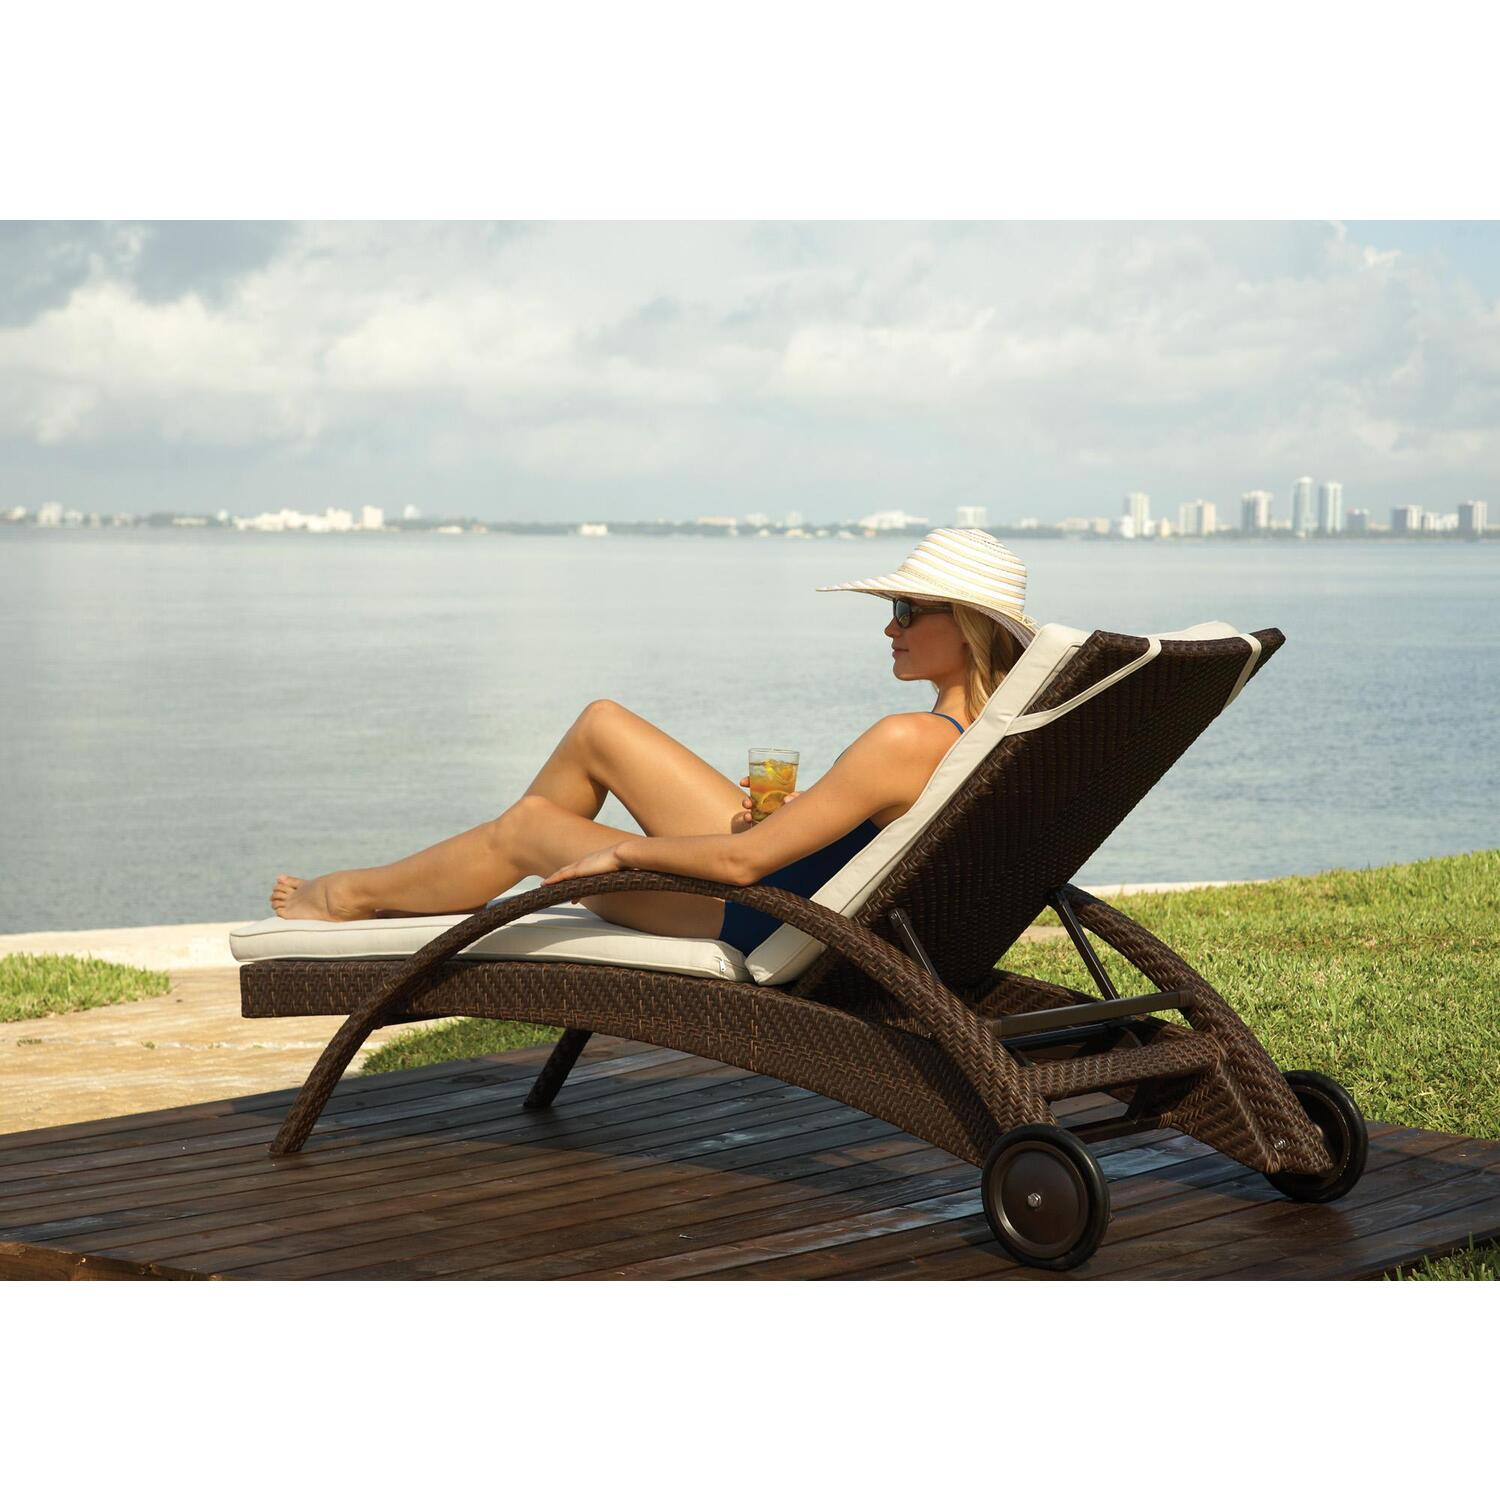 Hospitality Rattan Patio Chaise Lounge with wheels by OJ Commerce